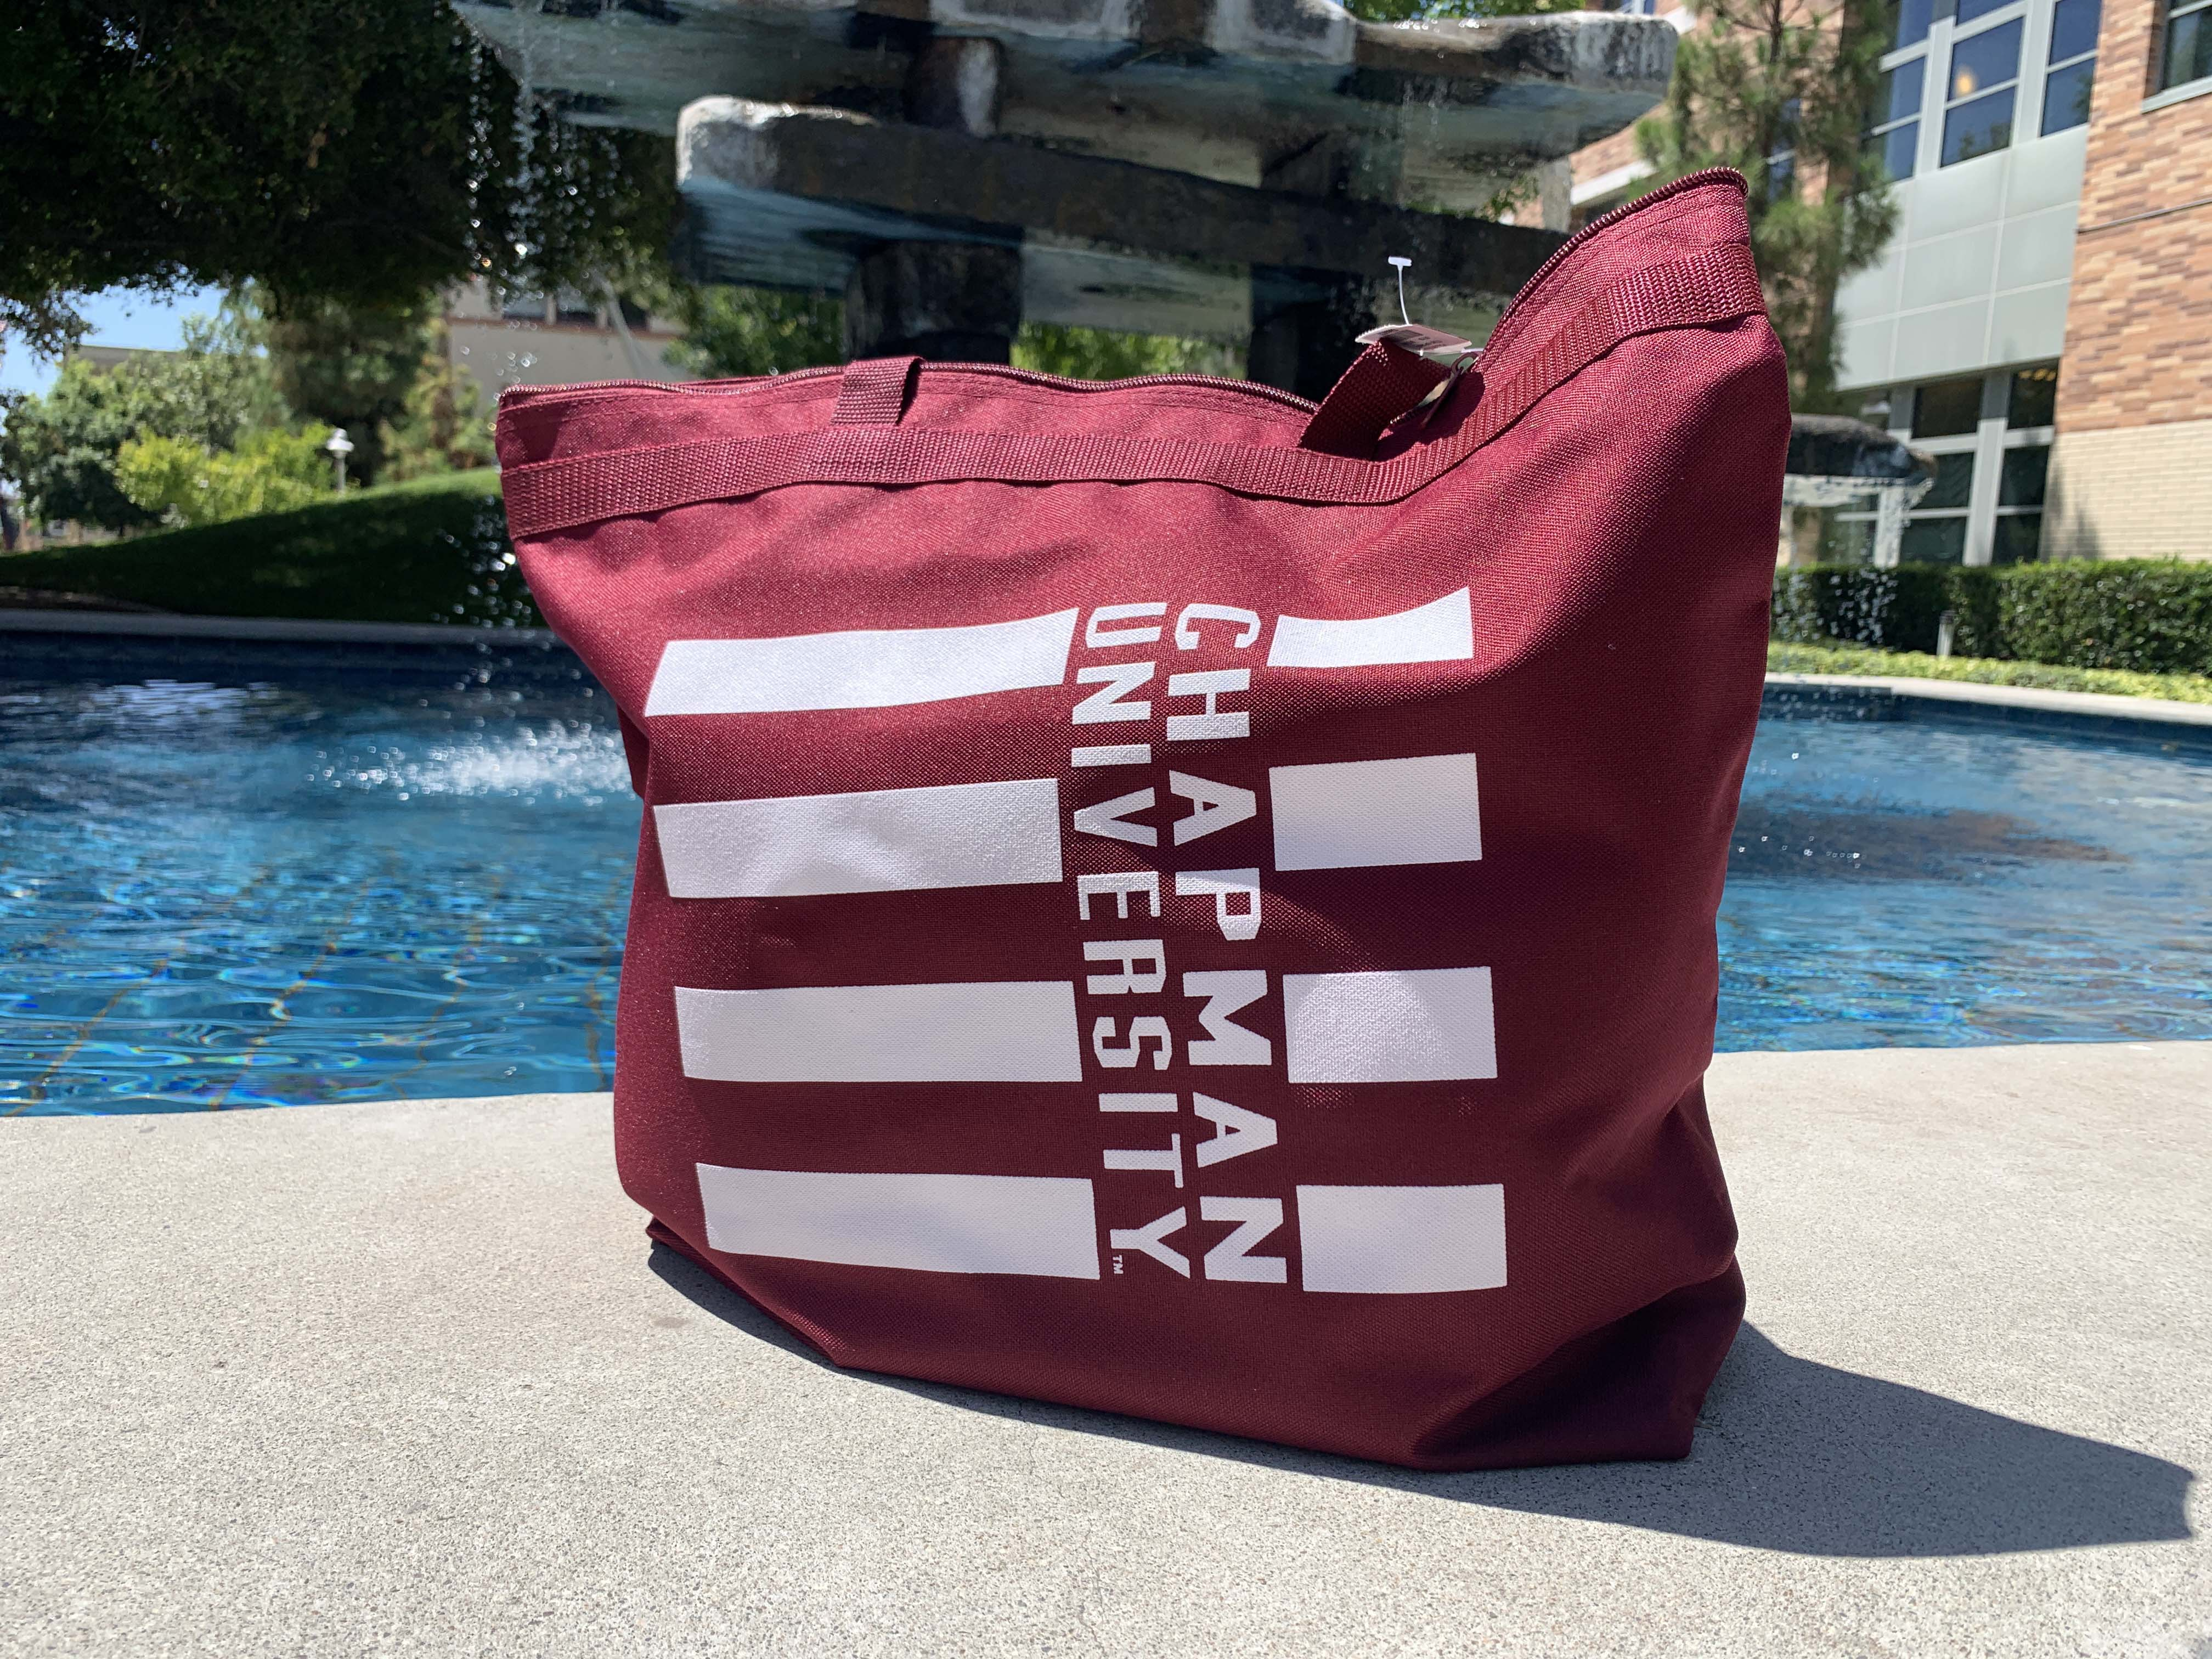 red tote bag with Chapman University printed on the front